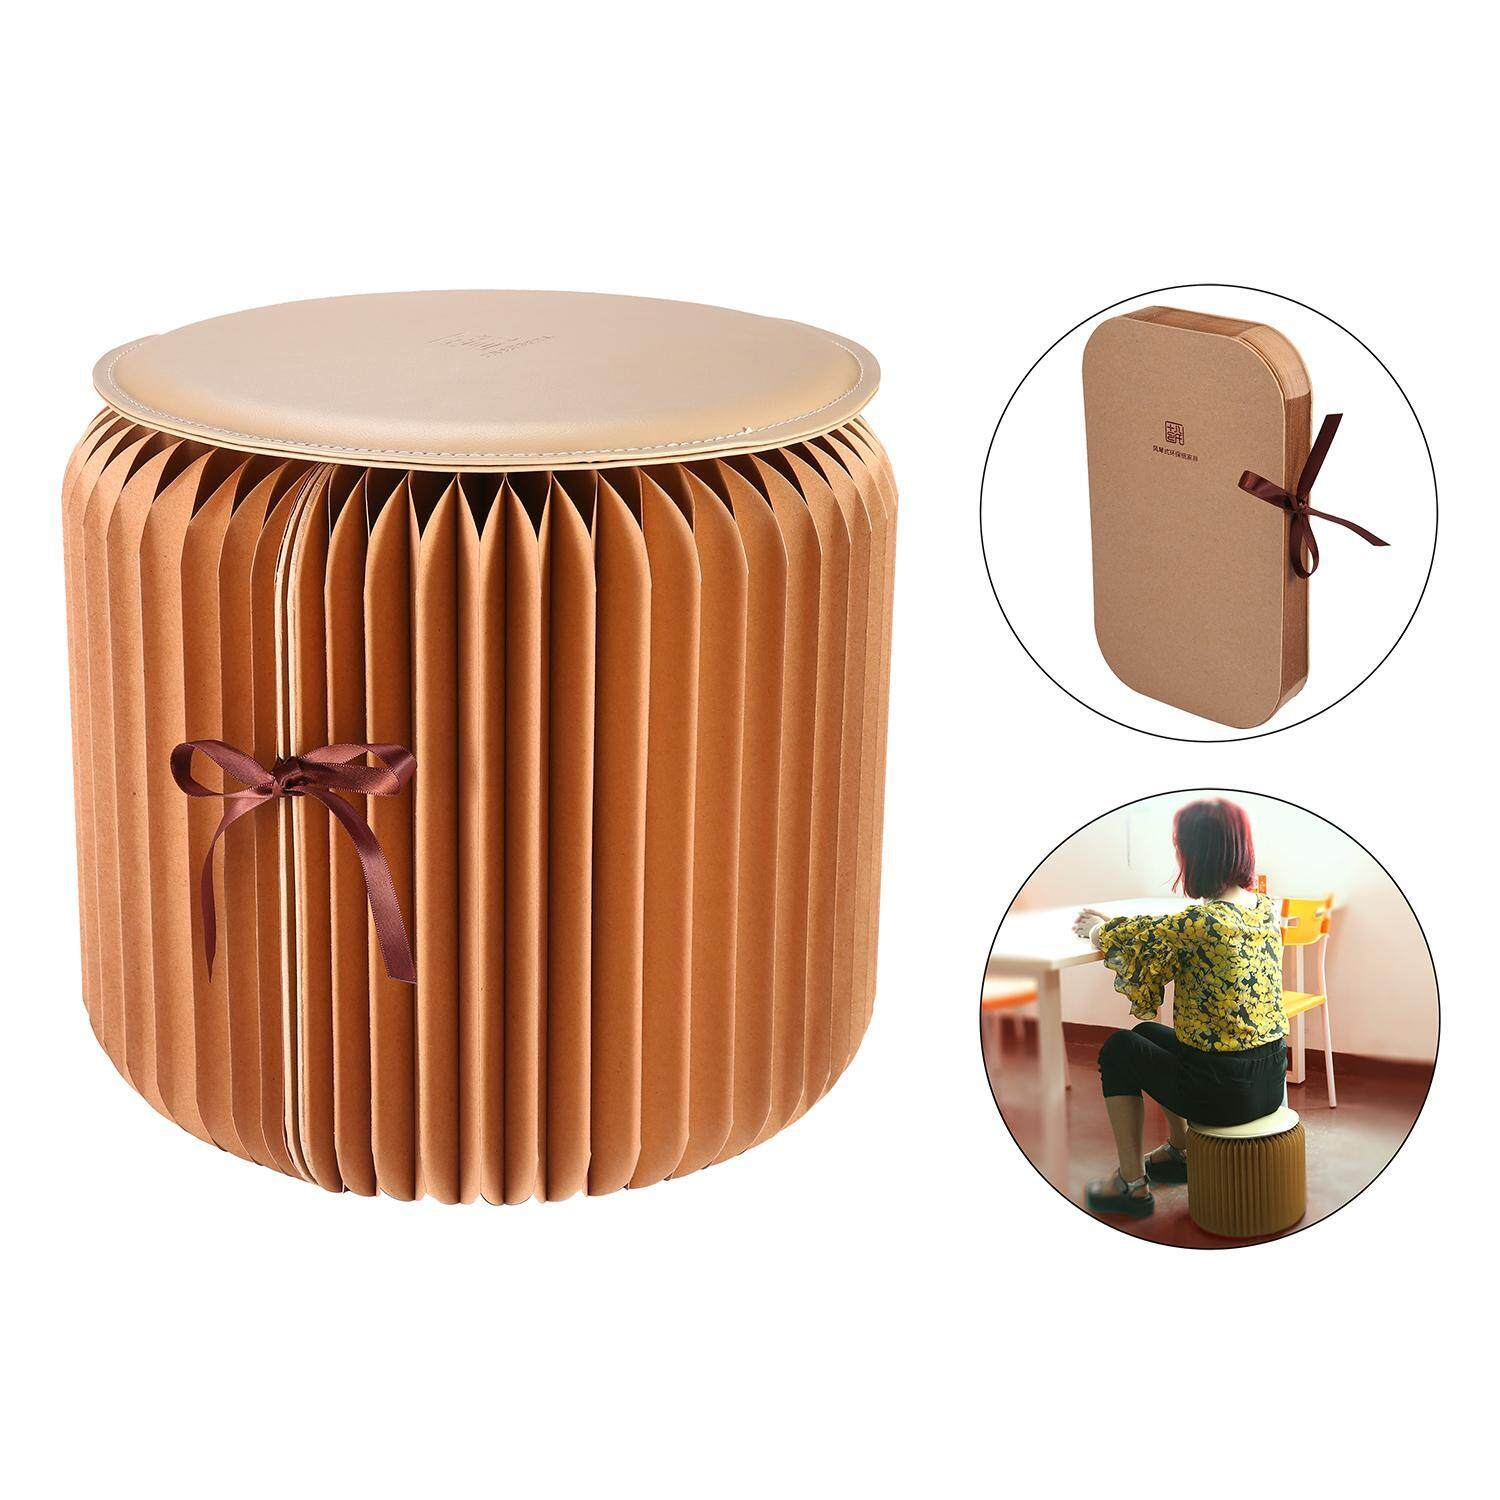 akerfush Flexible Paper Stool,Portable Home Furniture Paper Design Folding Chair with 1pcs Leather Pad,Brown Small Size - intl